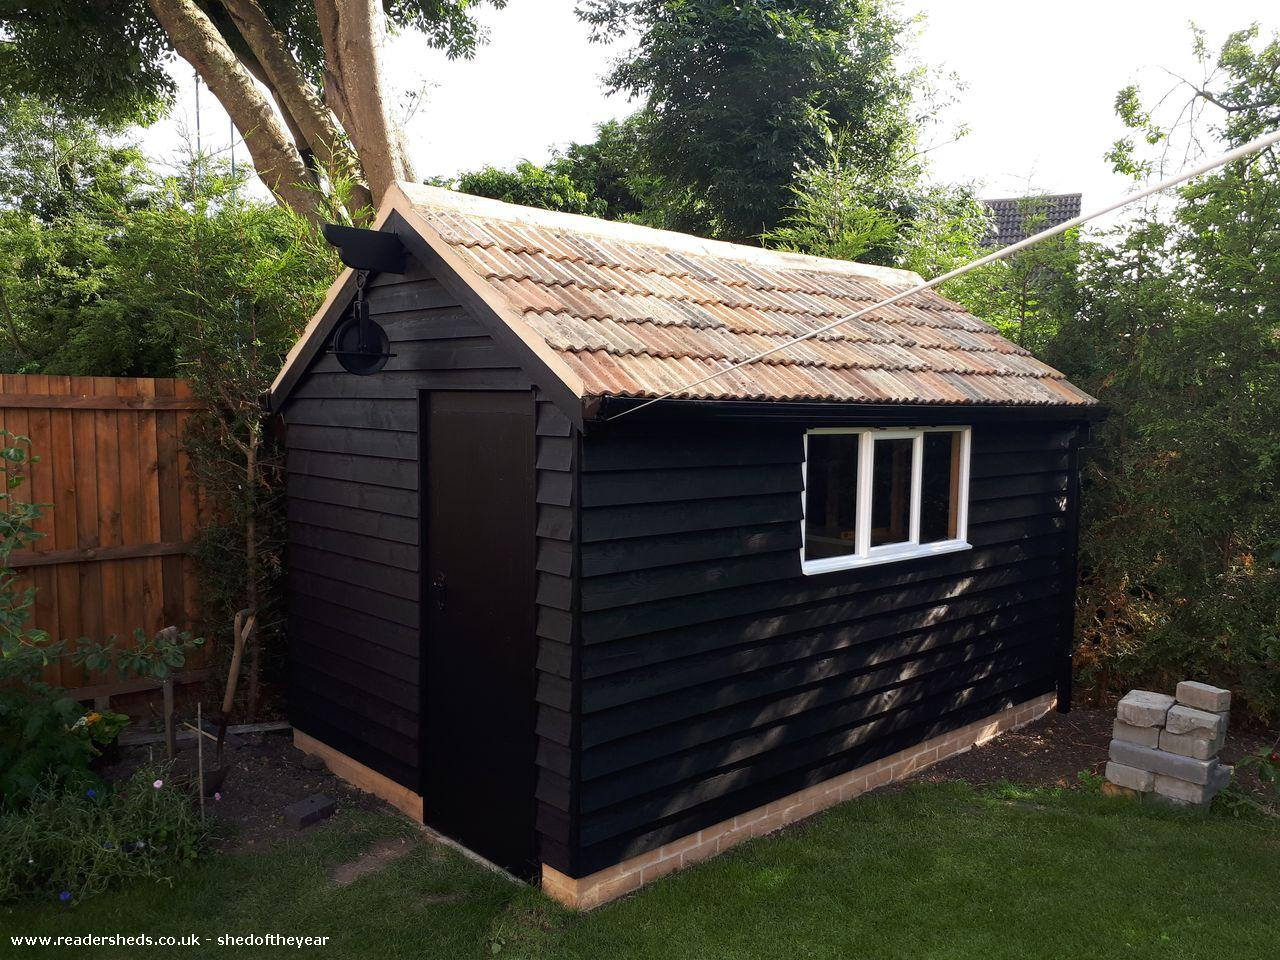 Photo of Barn shed, entry to Shed of the year